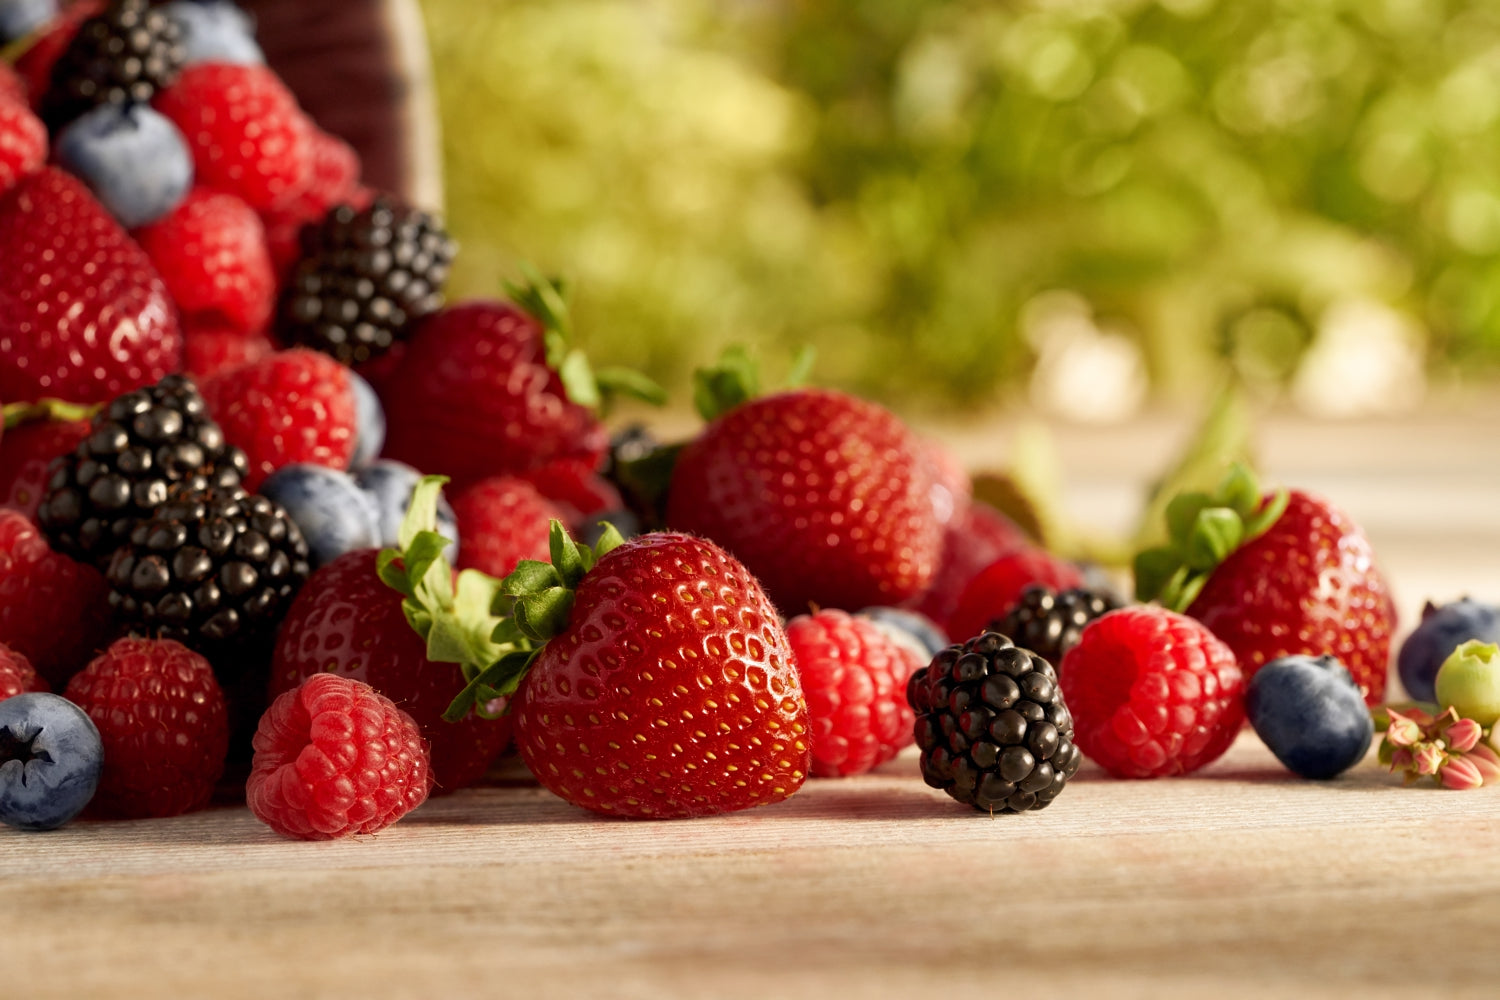 5 Of The Healthiest Berries You Can Munch On All Summer Long